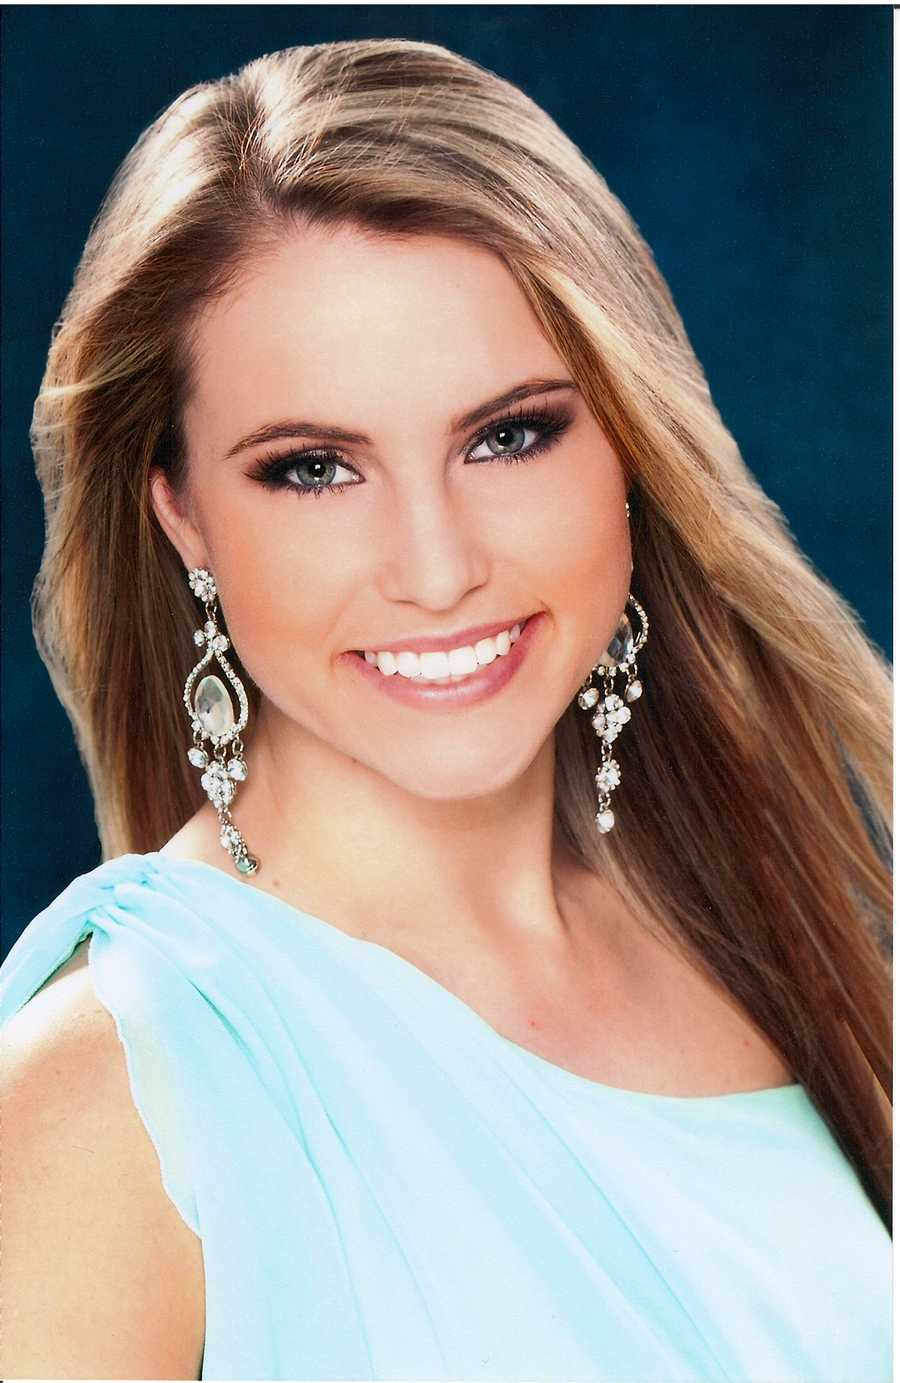 Christina Denny, 22, Miss Western MarylandSpecial Deeds for Special NeedsVocal